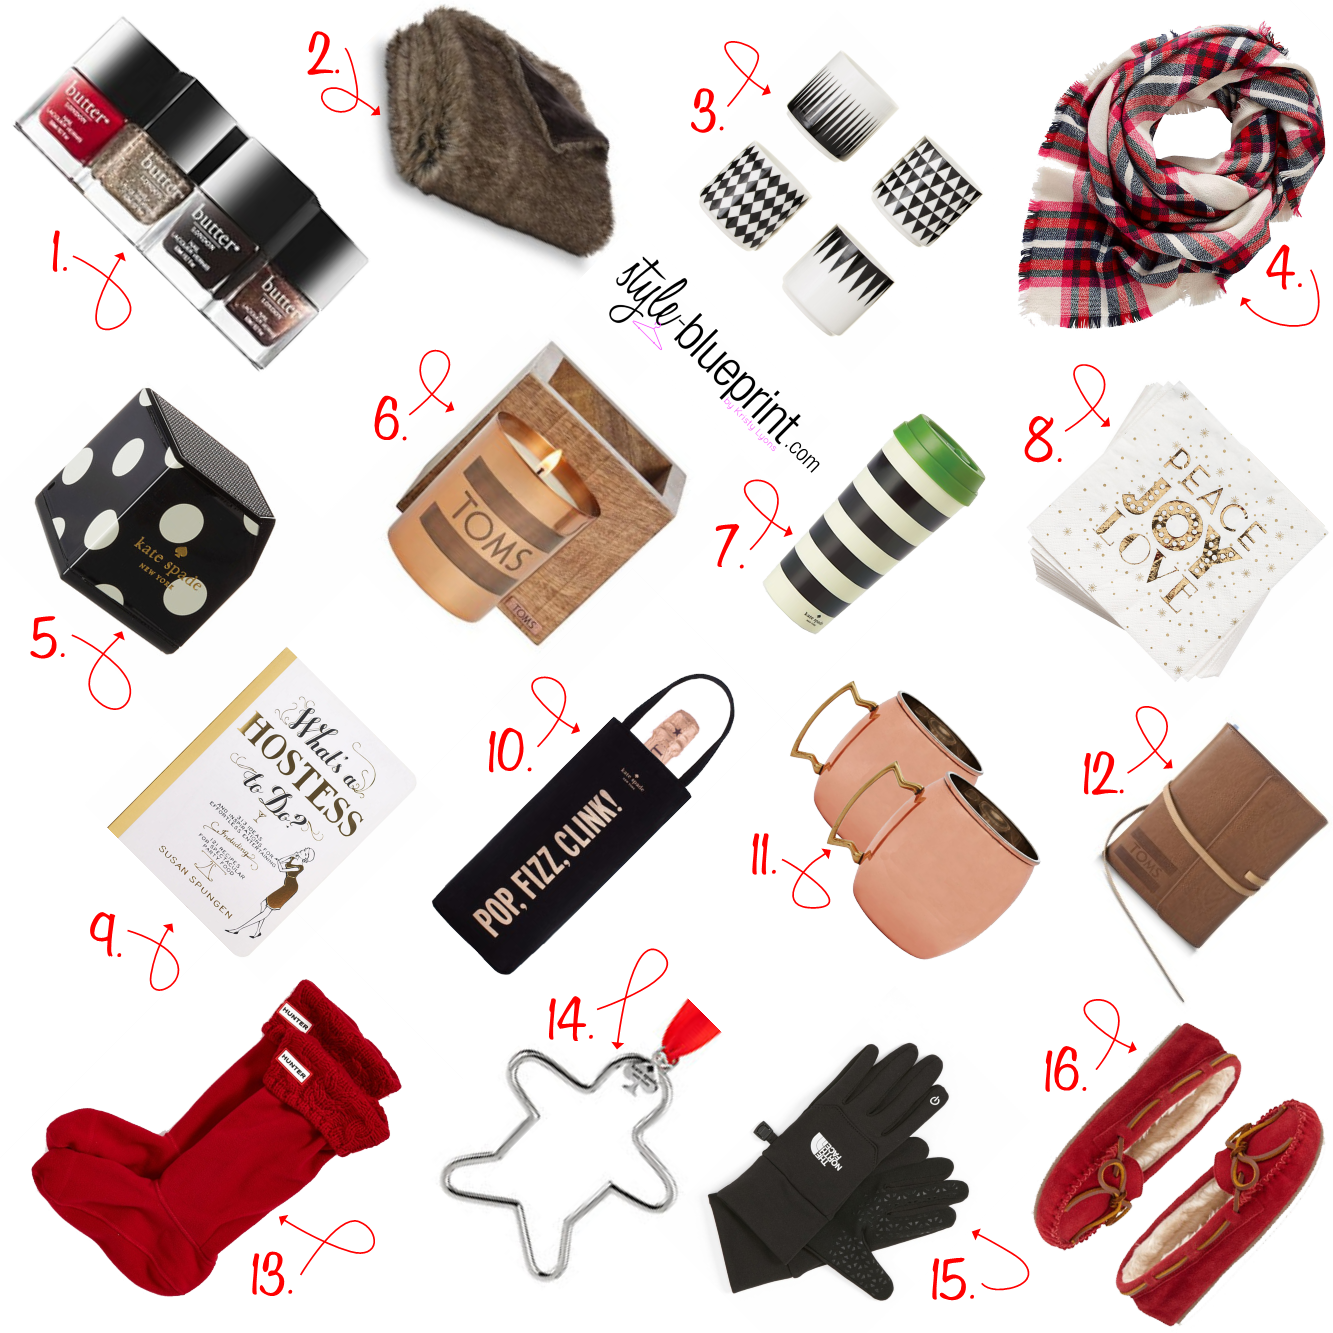 holiday gift ideas, under $50 holiday gift guide ideas, holiday gift guide 2014, gift guide friends and coworkers,